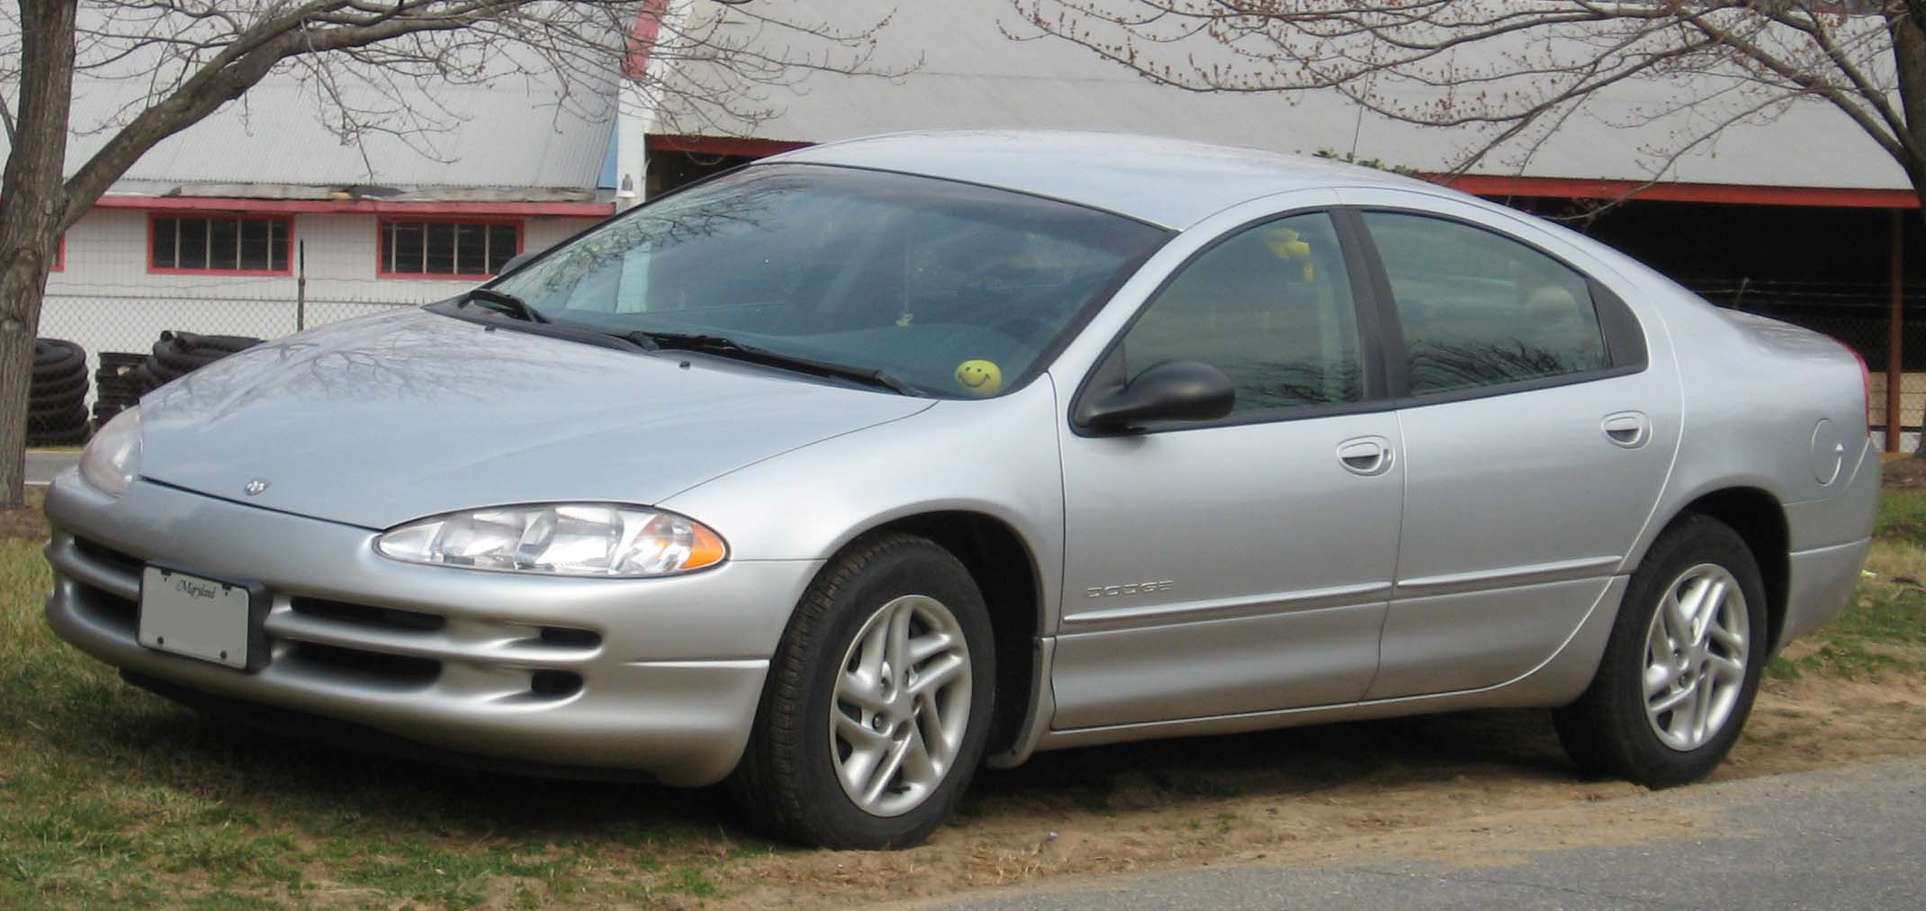 Dodge Intrepid #9153518